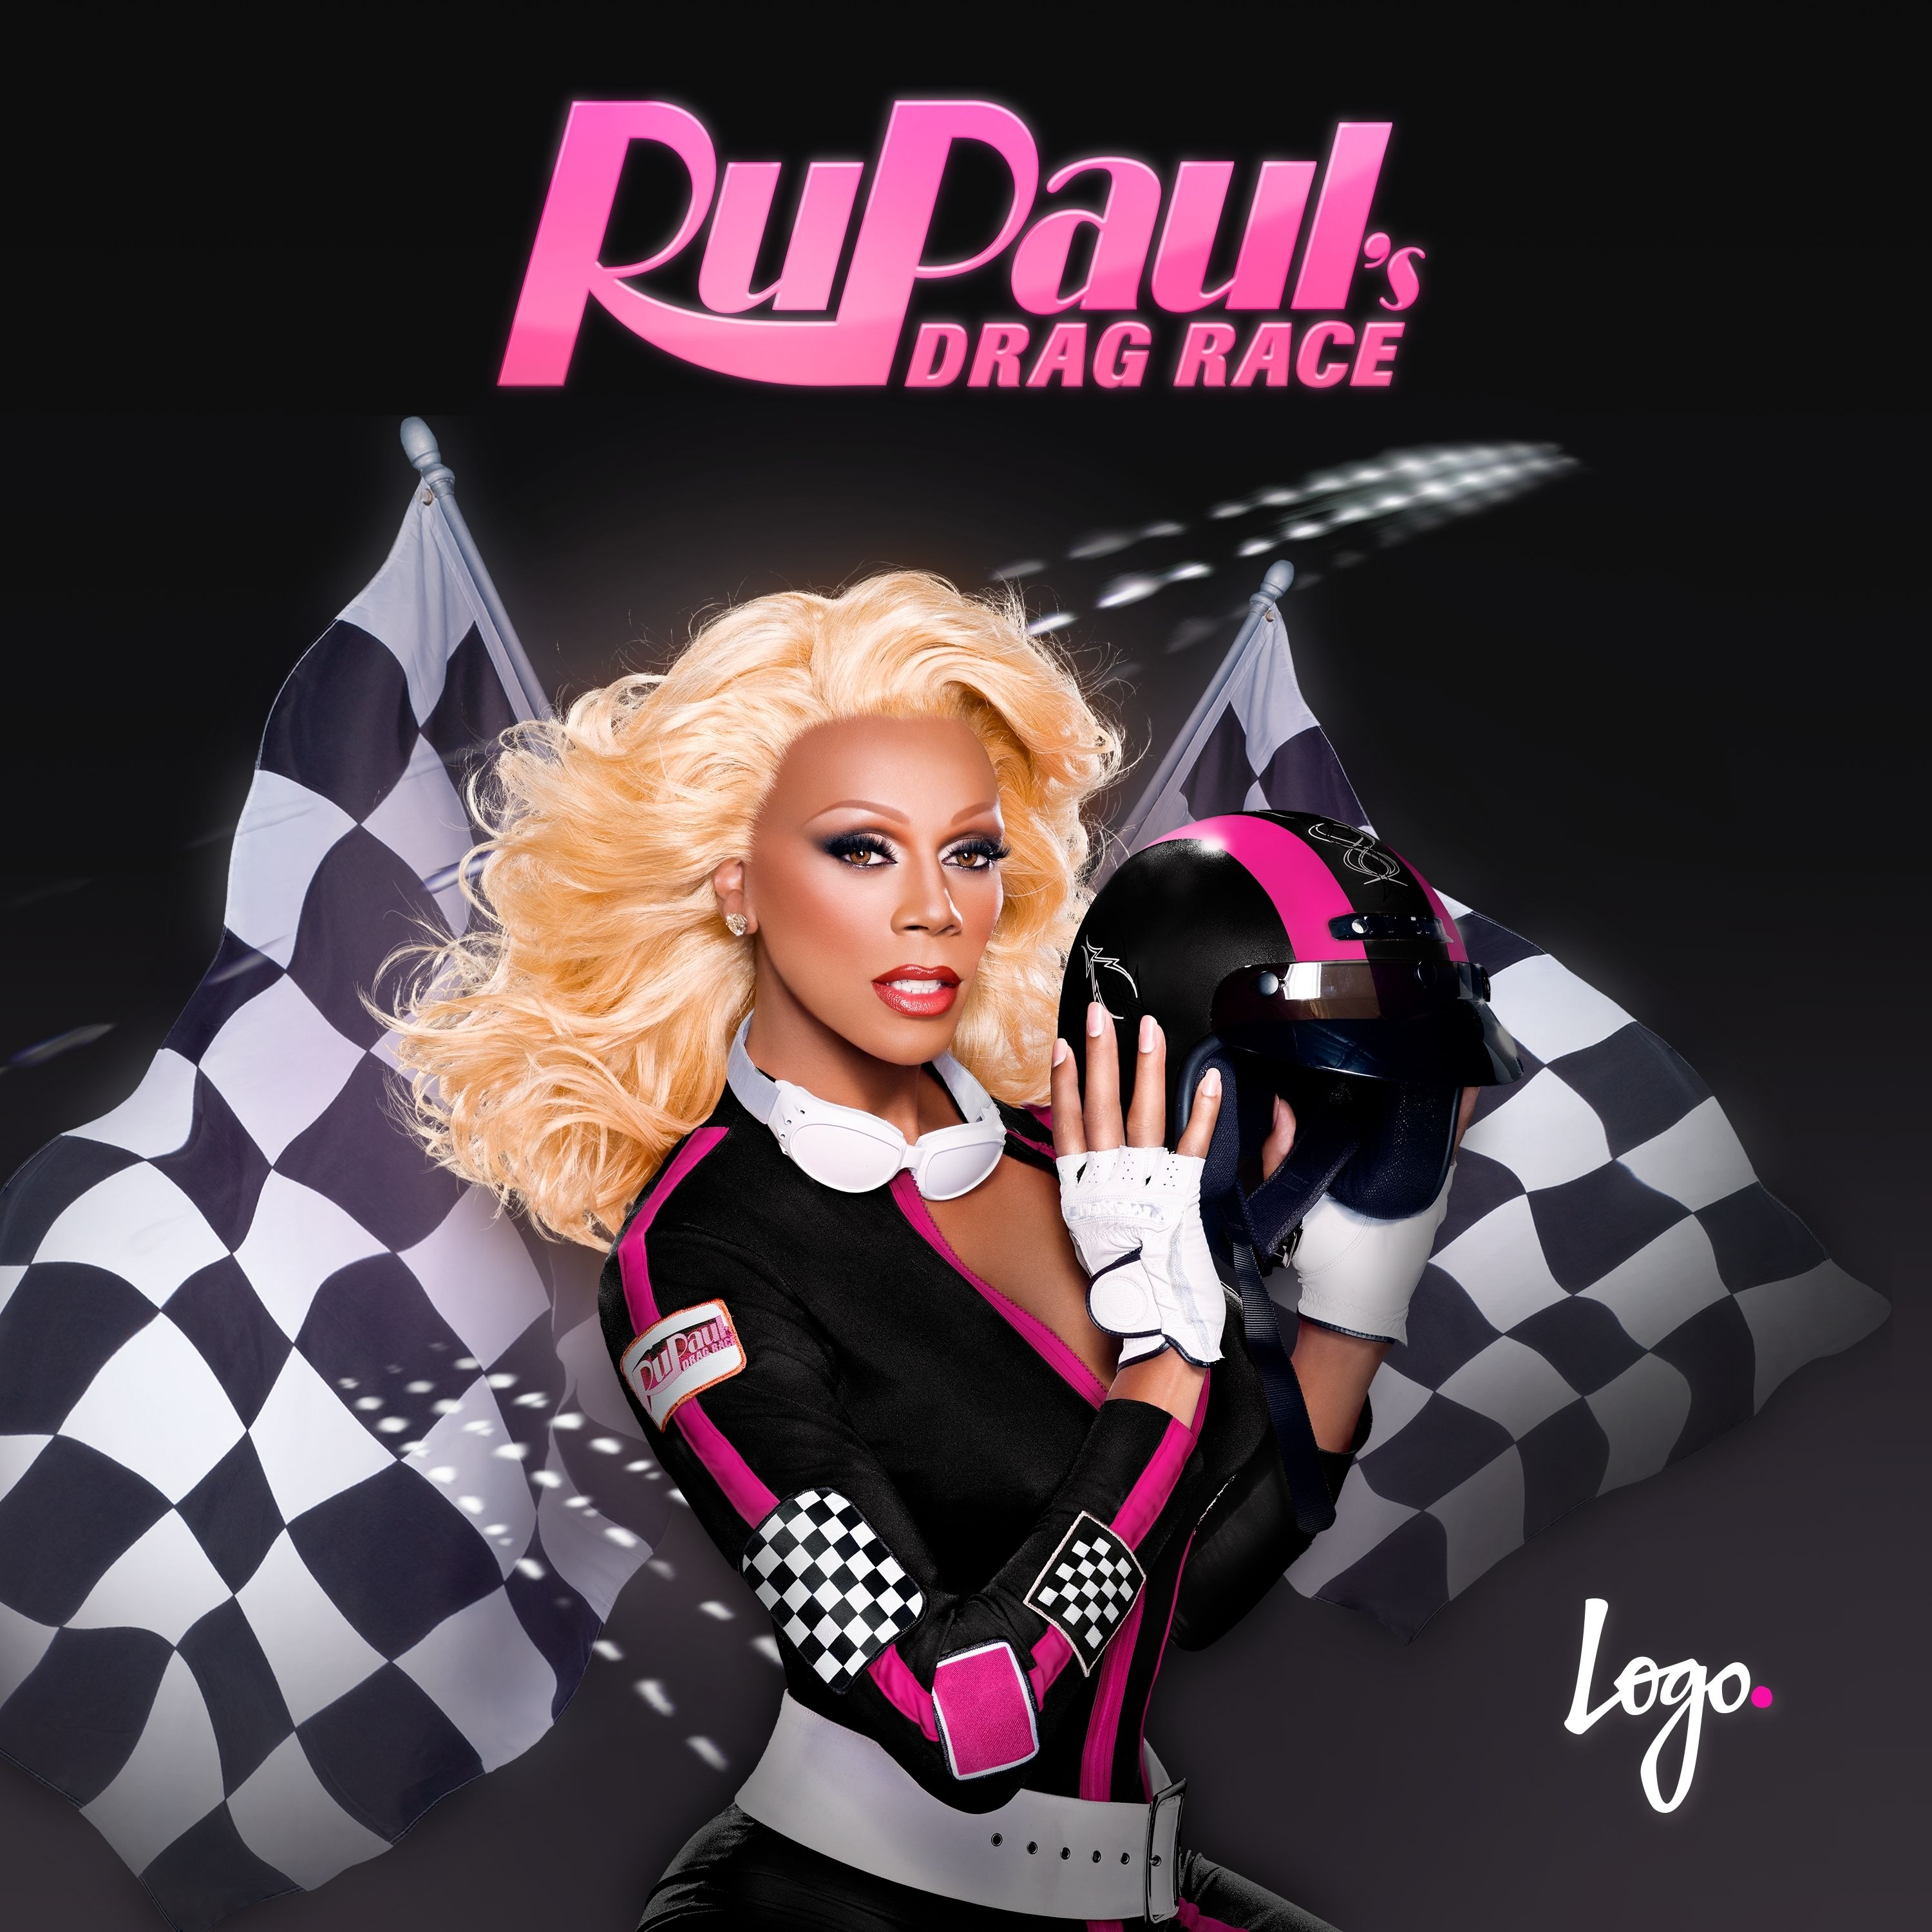 RuPaul's Drag Race (Season 2)